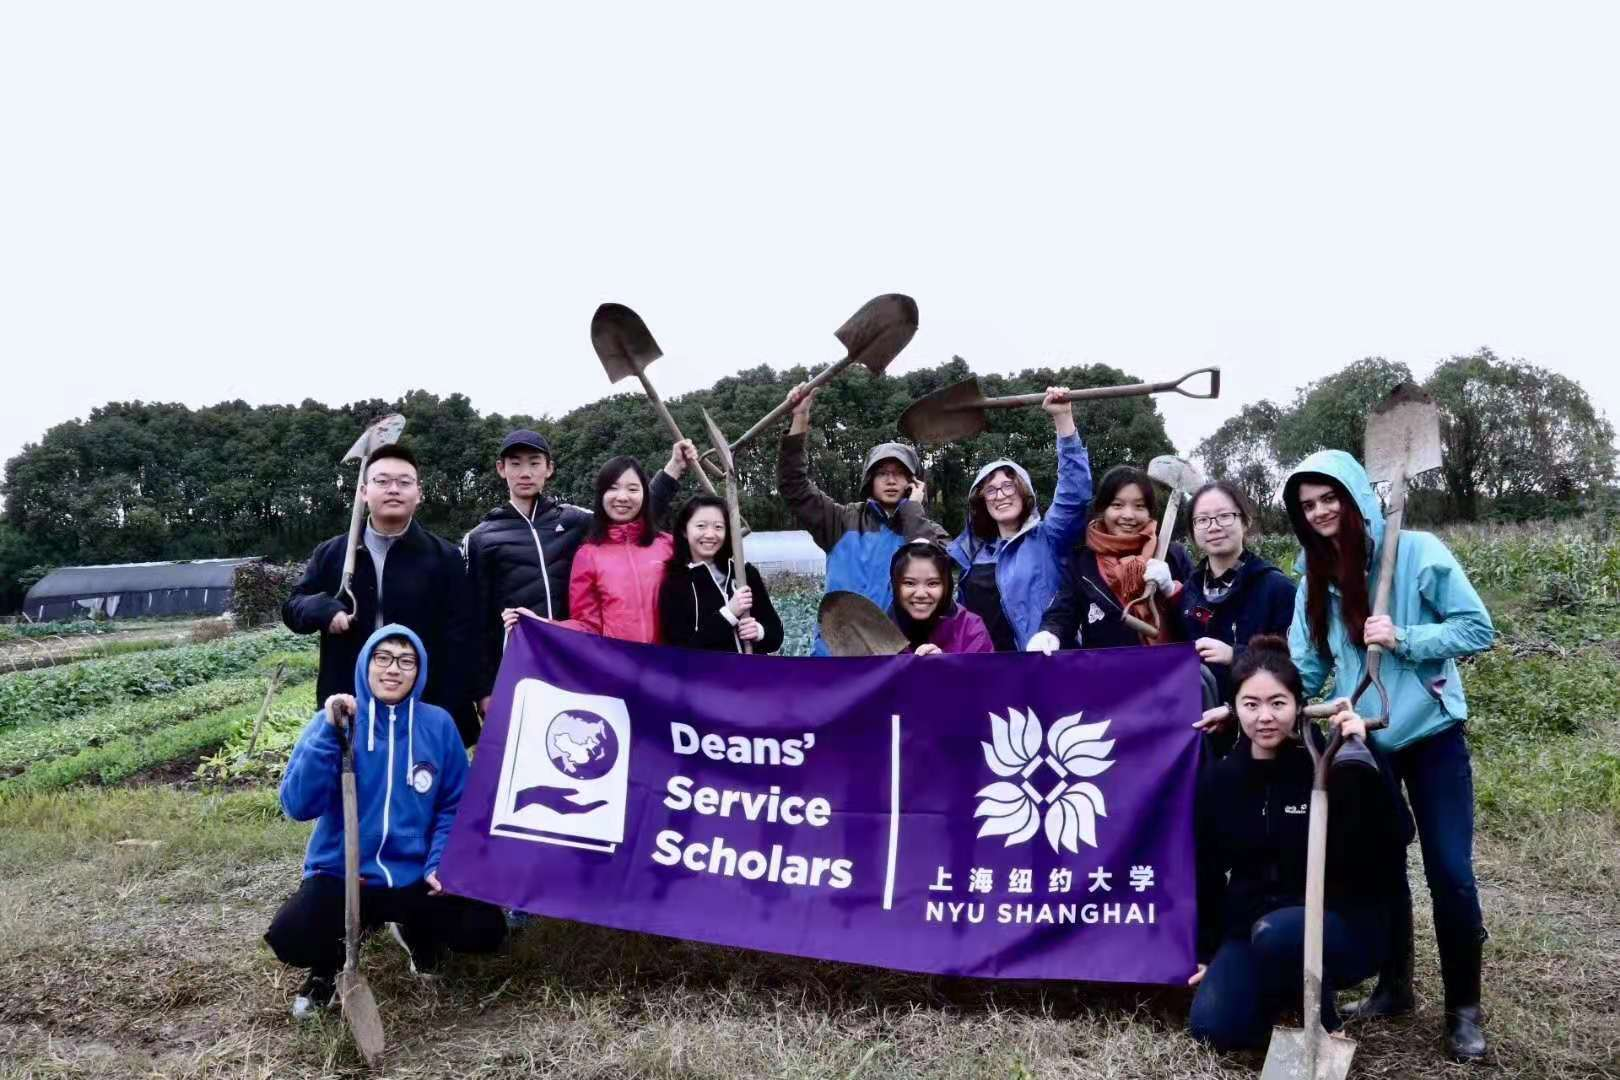 Ma and fellow volunteers wave shovels and pose in field with NYU Shanghai purple banner